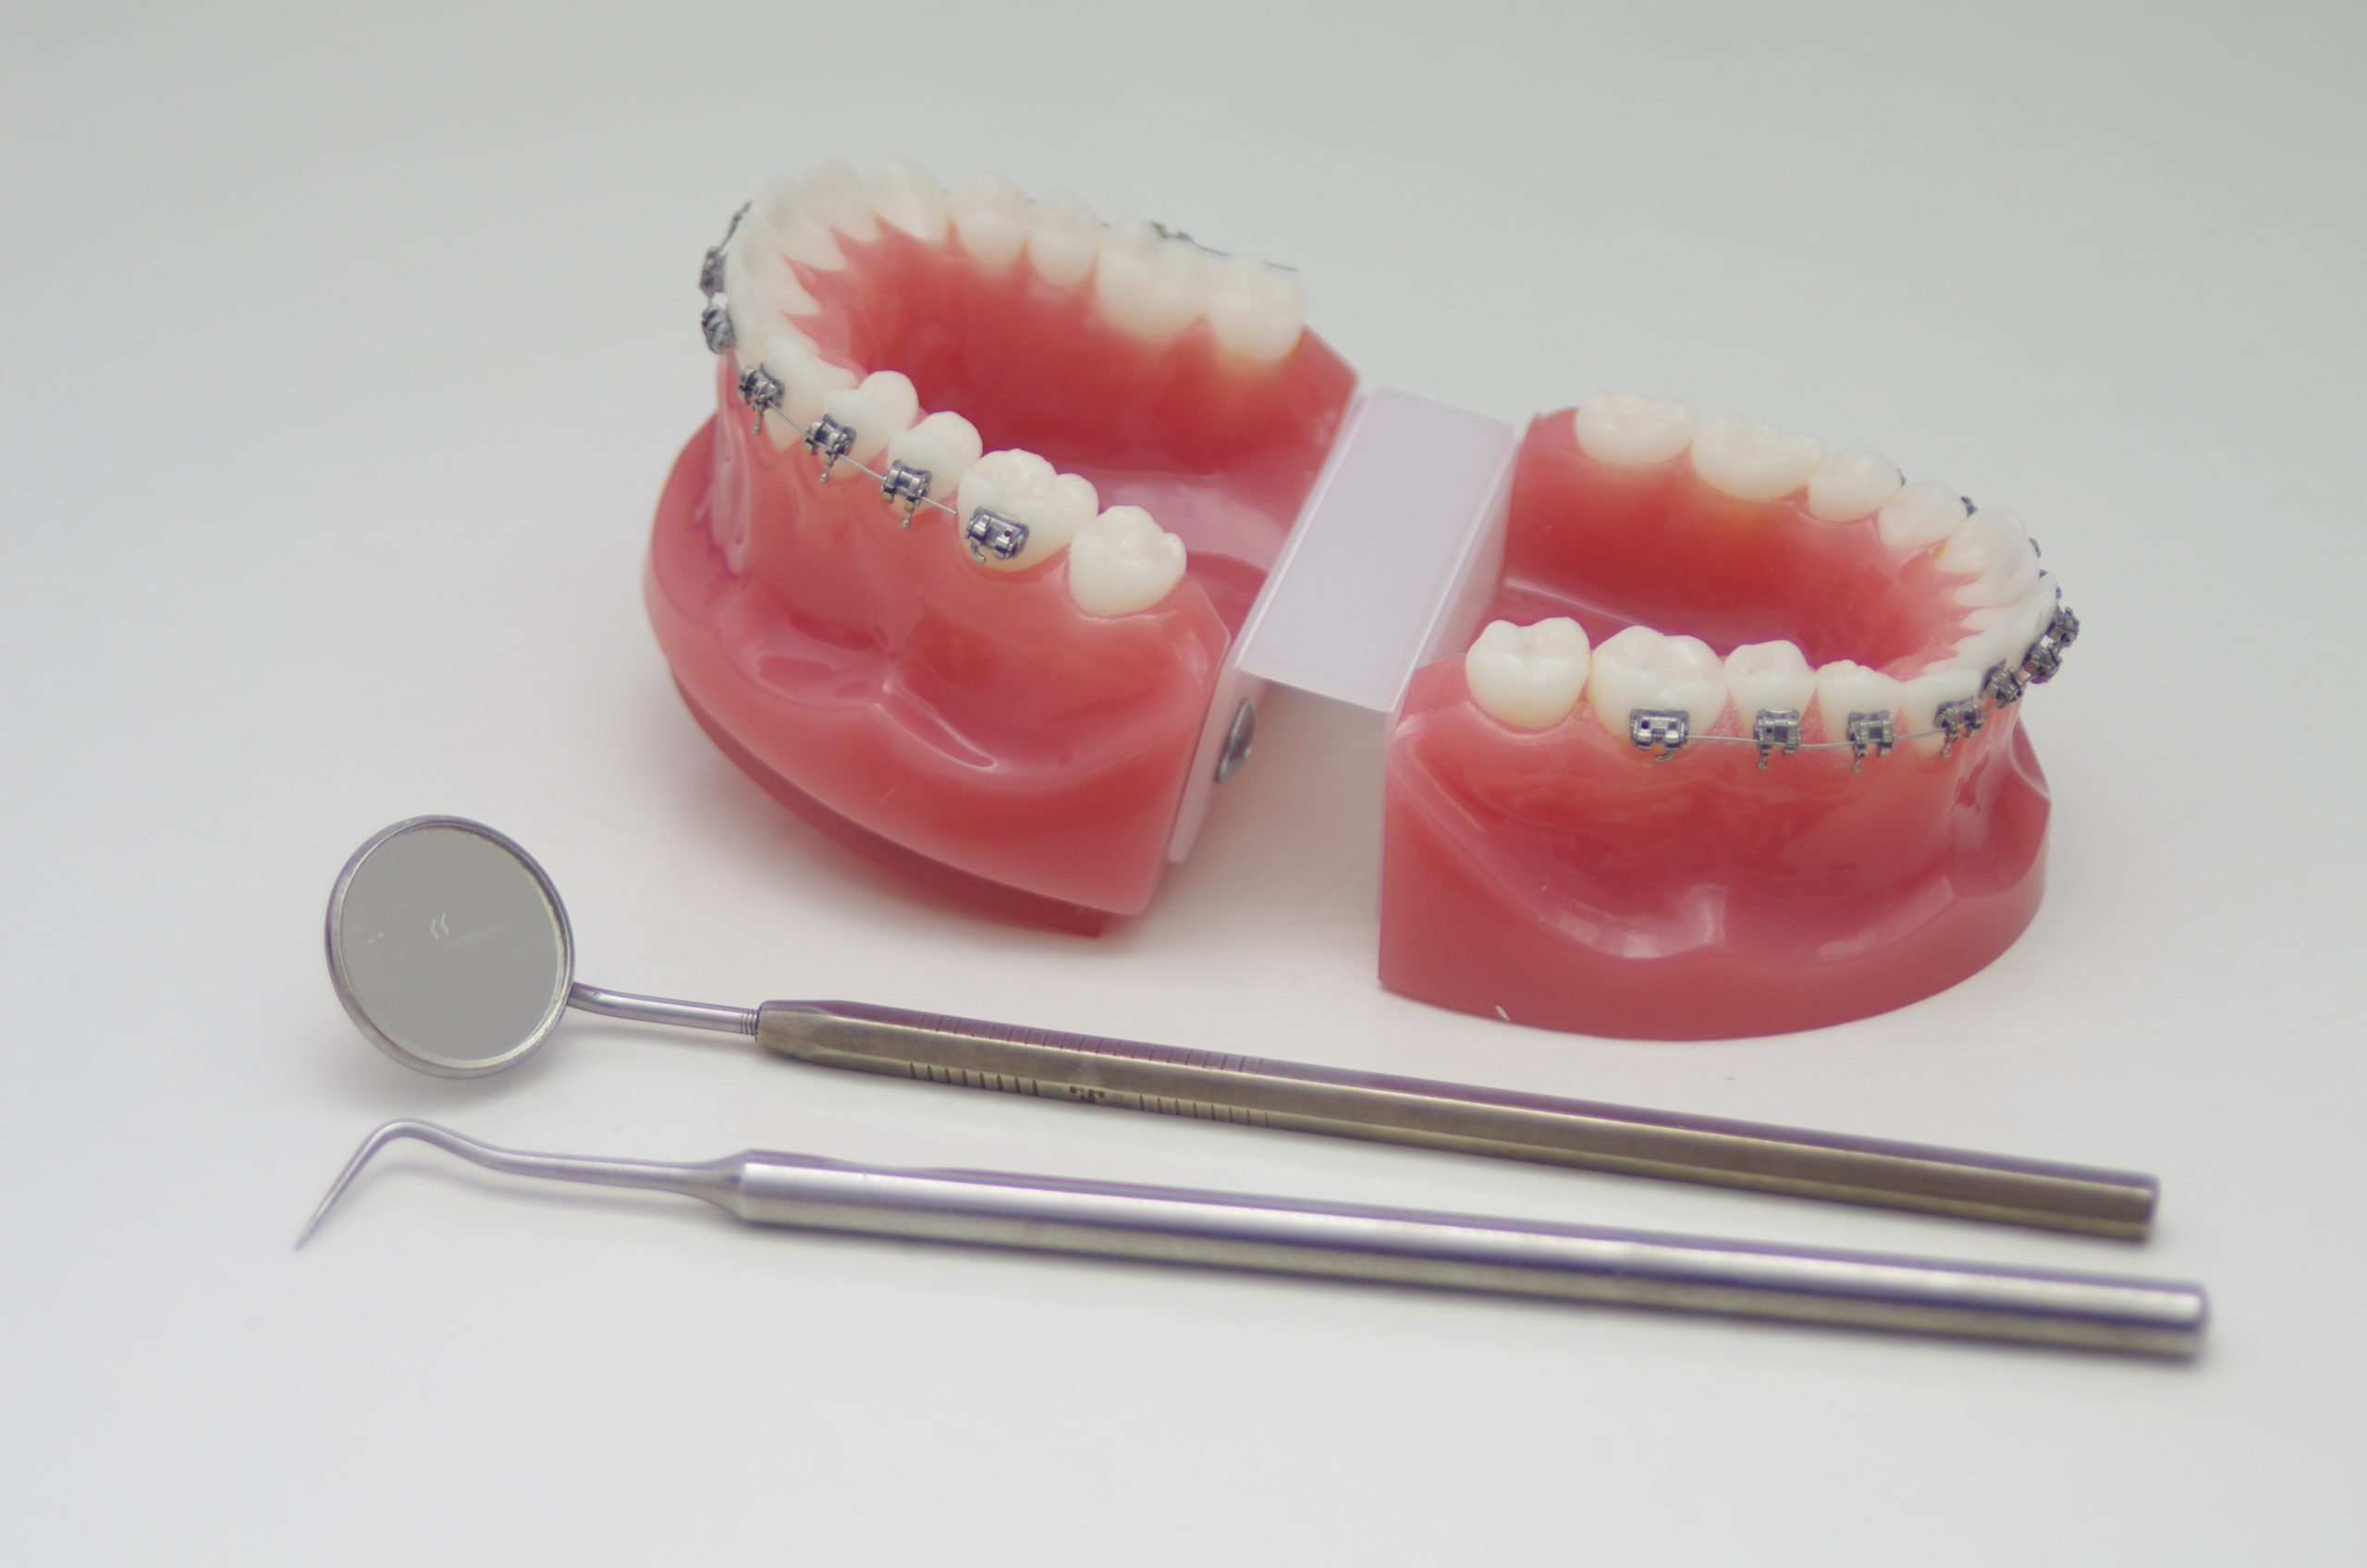 Ceramic Braces in Richardson